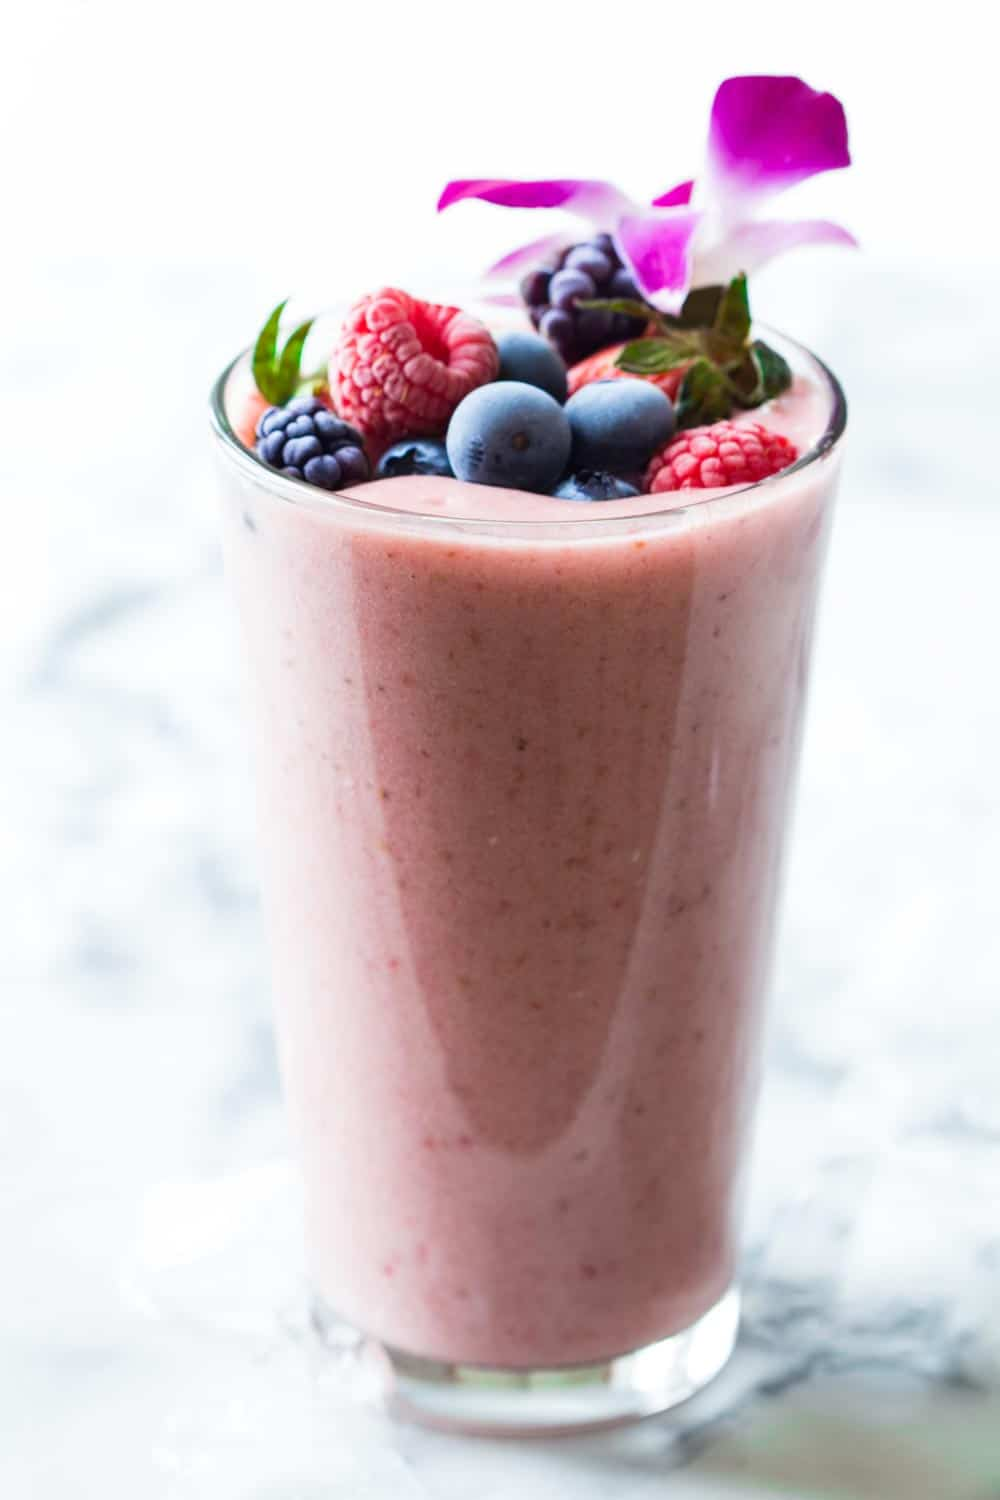 I struggle to eat enough fruit! This Strawberry Smoothie Without Yogurt makes it easy peasy to dump 2 servings of fruit in one go. I know it's better to spread the fruits throughout the day. But for me it's either this or nothing.